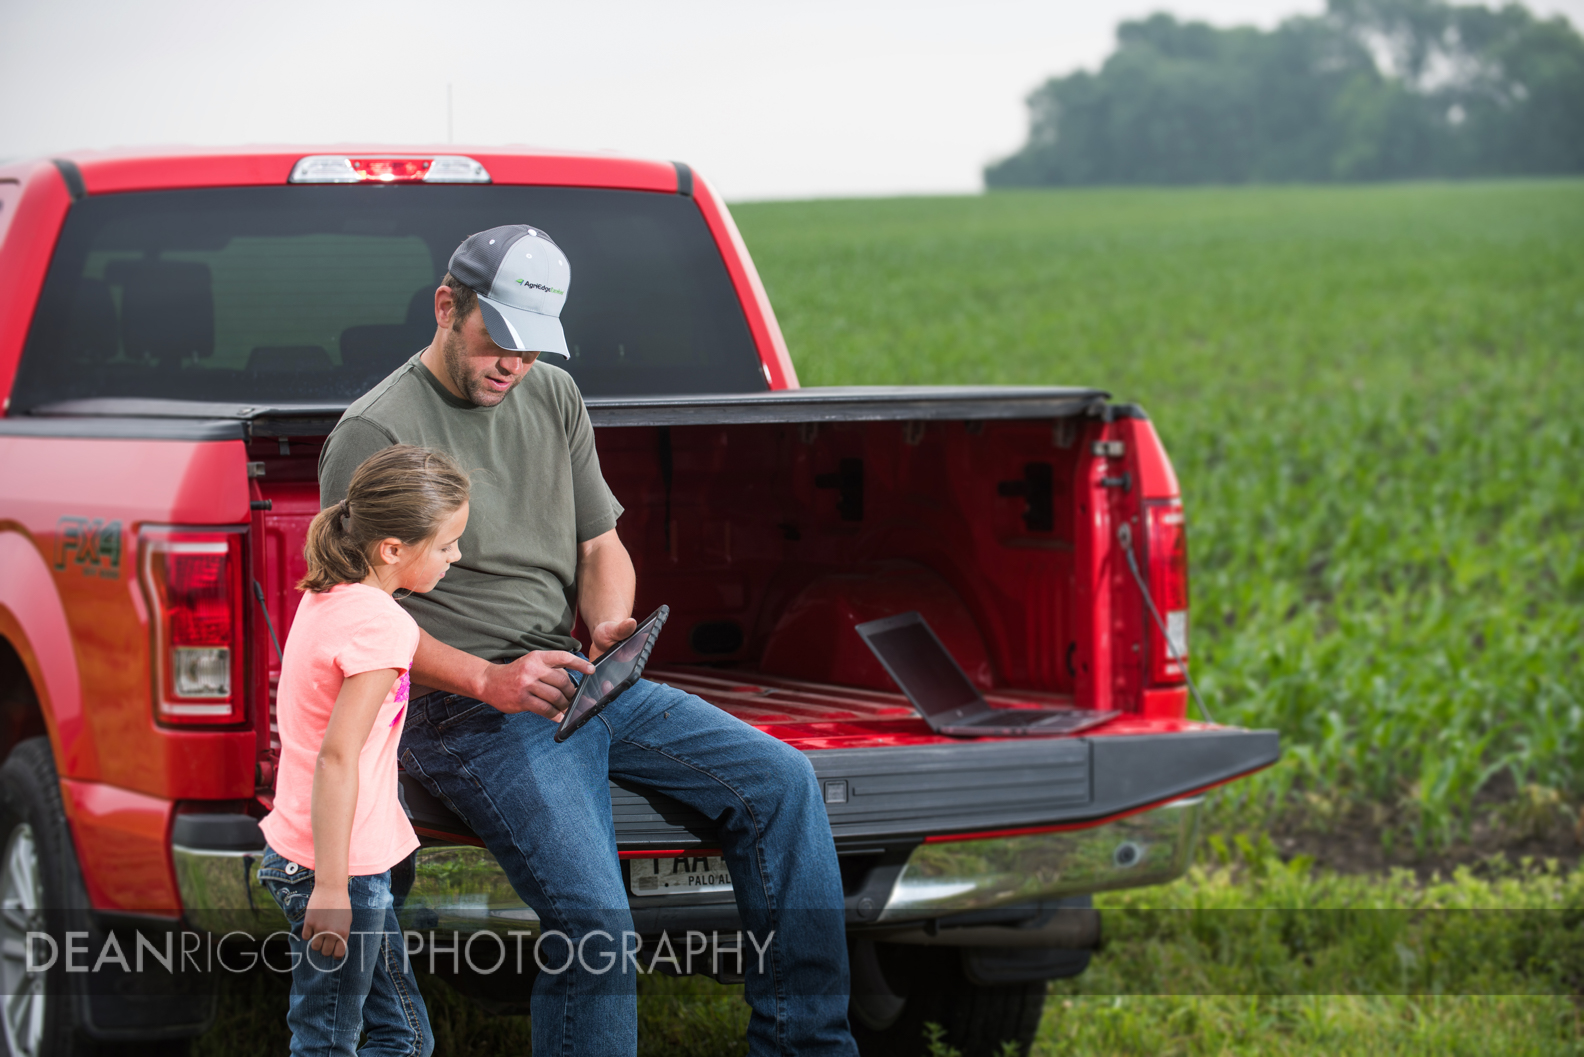 Working in the field with his daughter and an ipad on the fmaily farm in Medford, Minnesota.